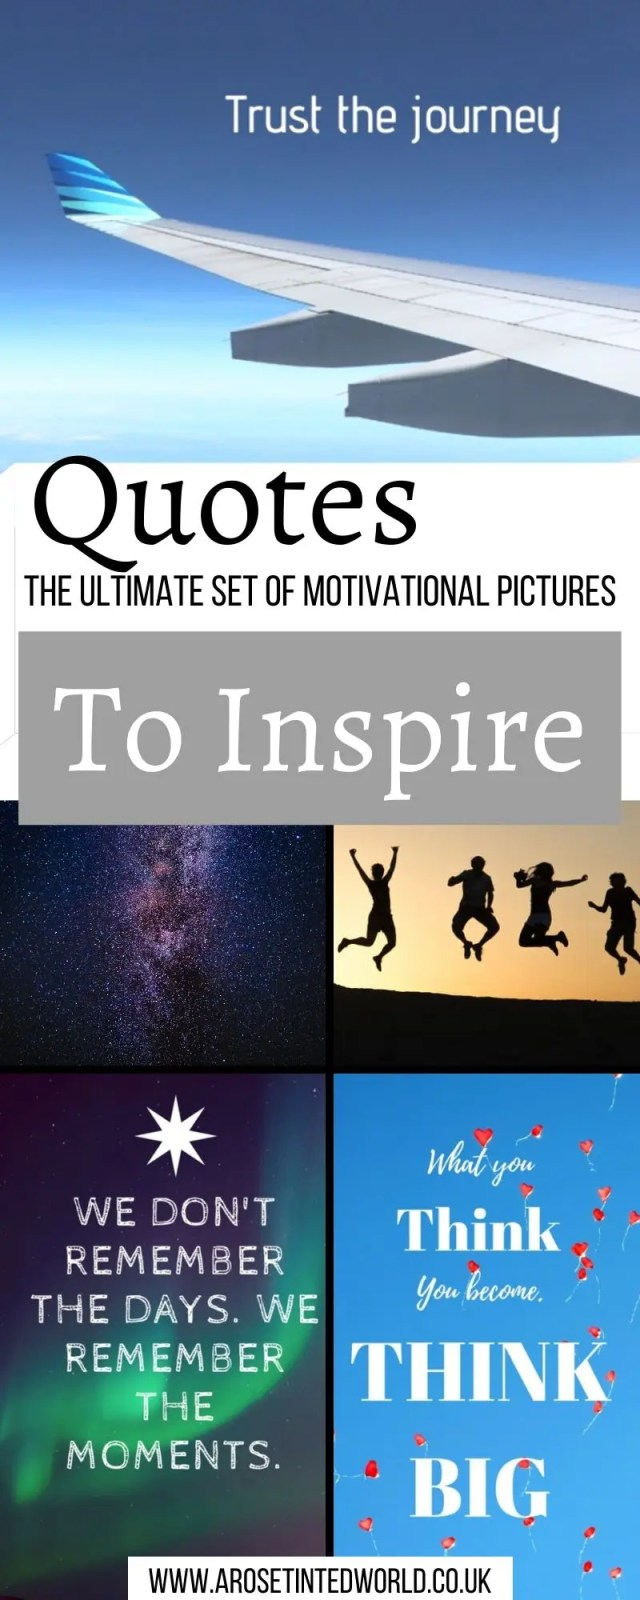 60 Positive motivational quotes #quotes #motivationalquotes #motivation #quotestoliveby #quoteoftheday #quotesdaily #quotesinspirational #quotesinspirationalpositive #quotesmotivation #positivequotes #positivethinking #positivethoughtsquotes #positivityquotes